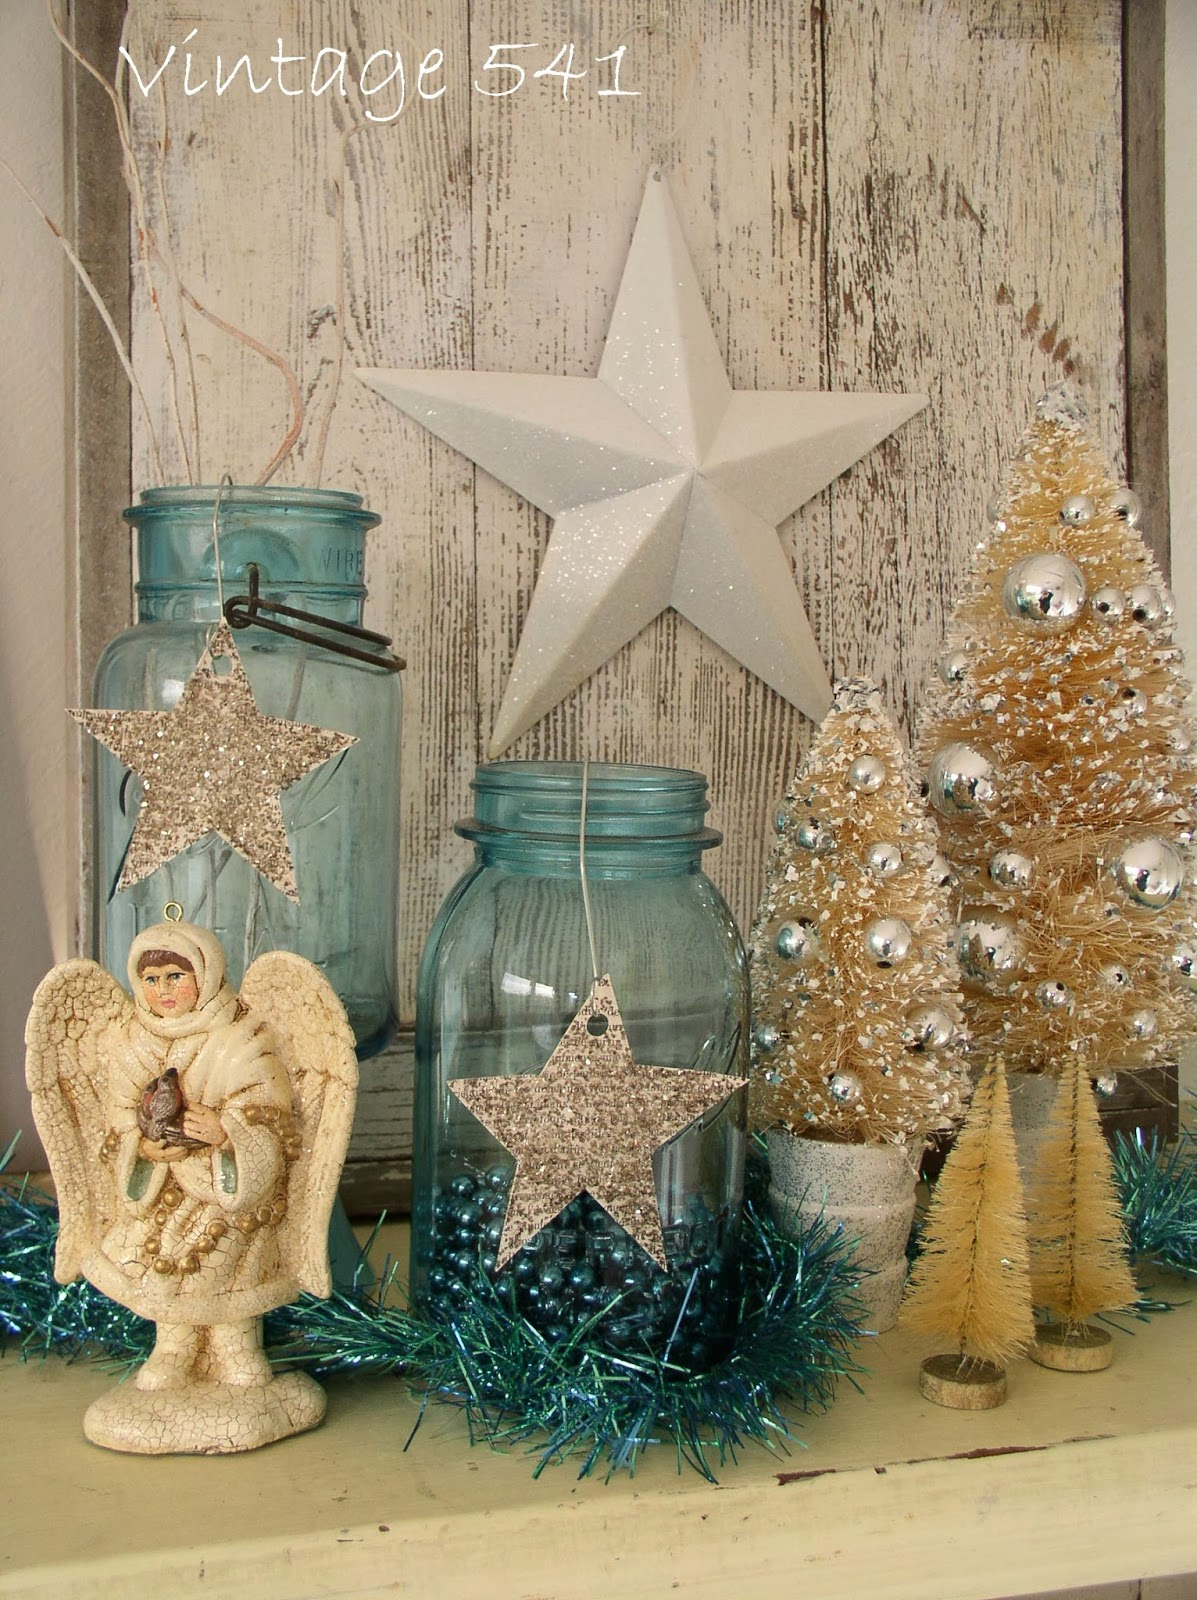 Vintage 541: Aqua and White Christmas Decor